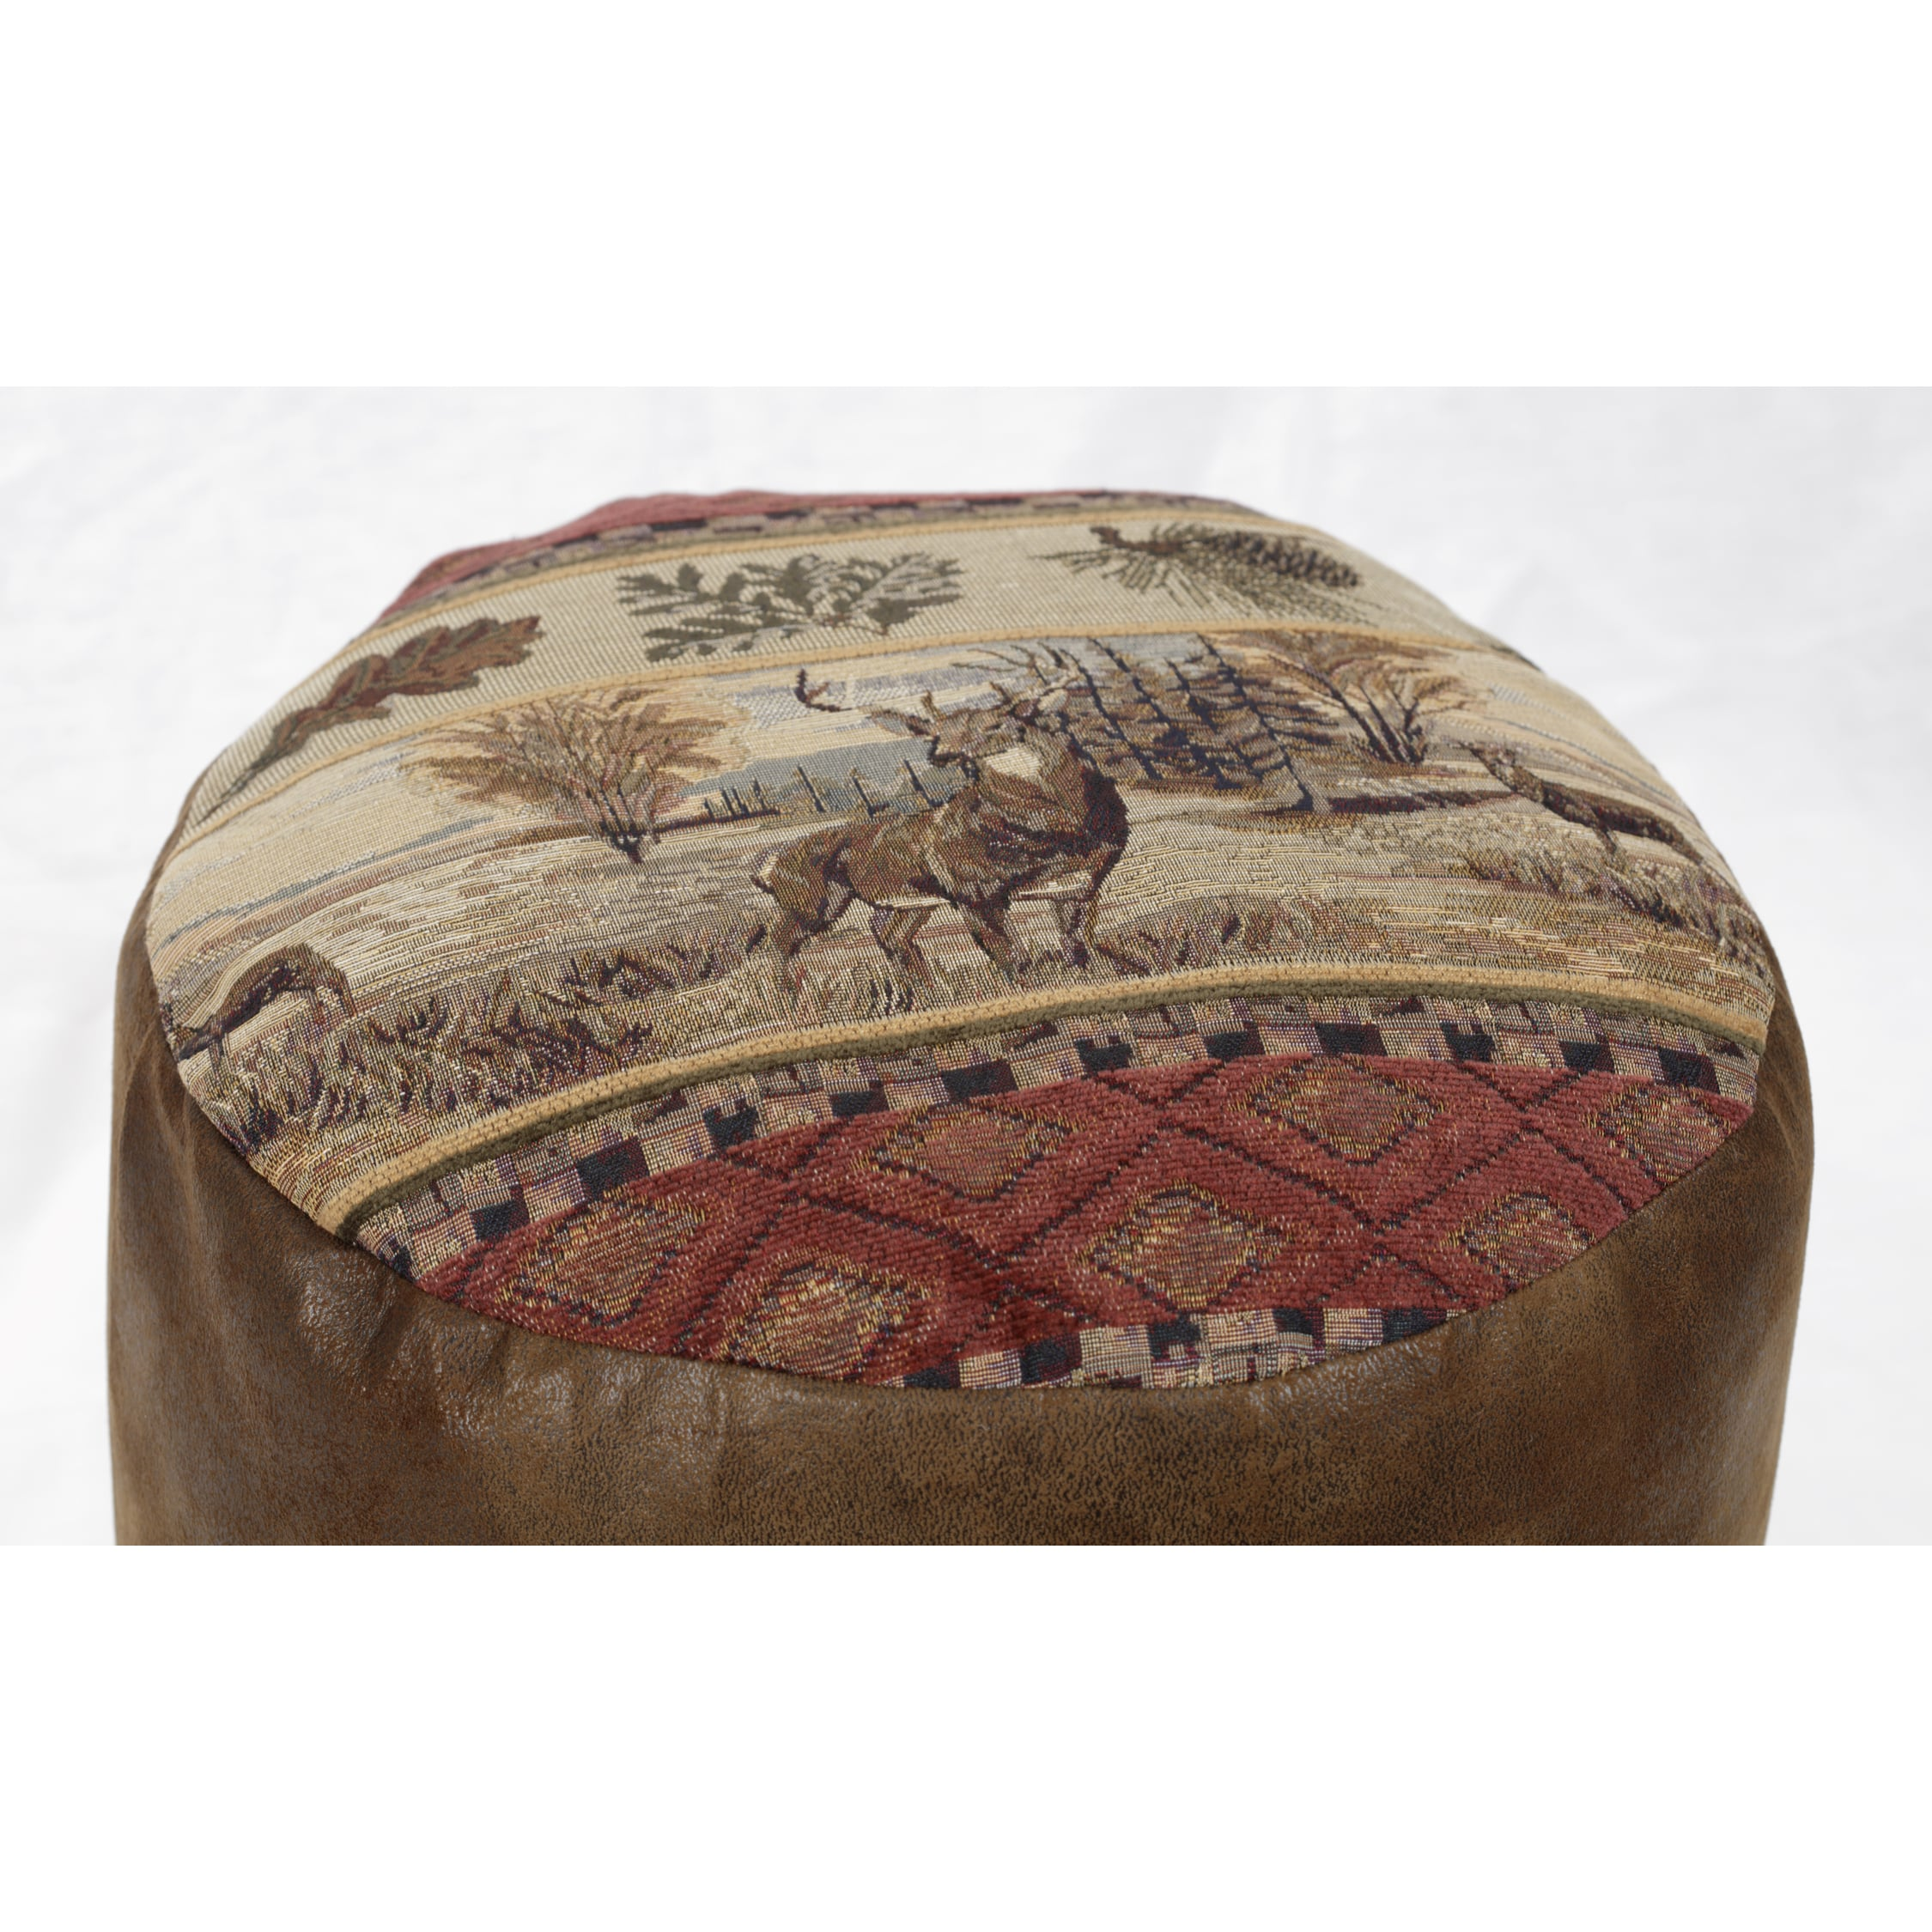 Deer Valley Tapestry Pouf Ottoman Brown Natural Tan Country Rustic Southwestern Pattern Square Fabric Foam Microfiber - Diamond Home USA